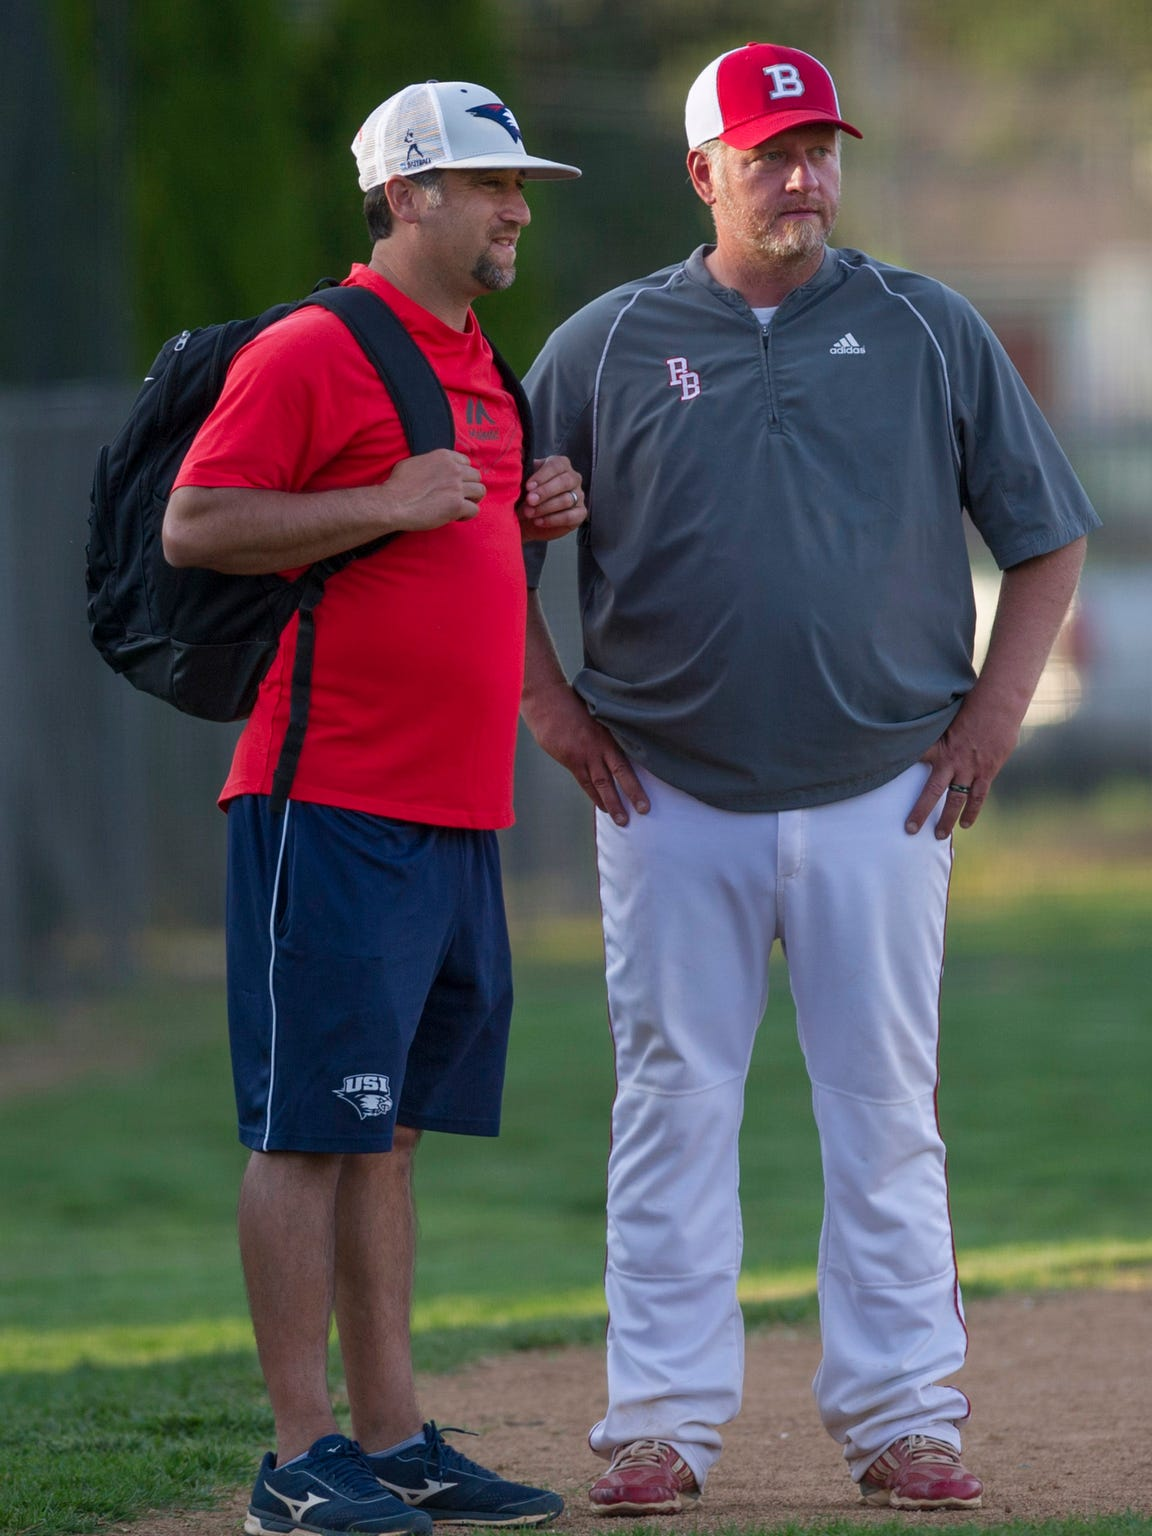 University of Southern Indiana baseball head coach Tracy Archuleta visits with Bosse coach Craig Shoobridge after their 2017 game against North this past season at Washington Middle School.